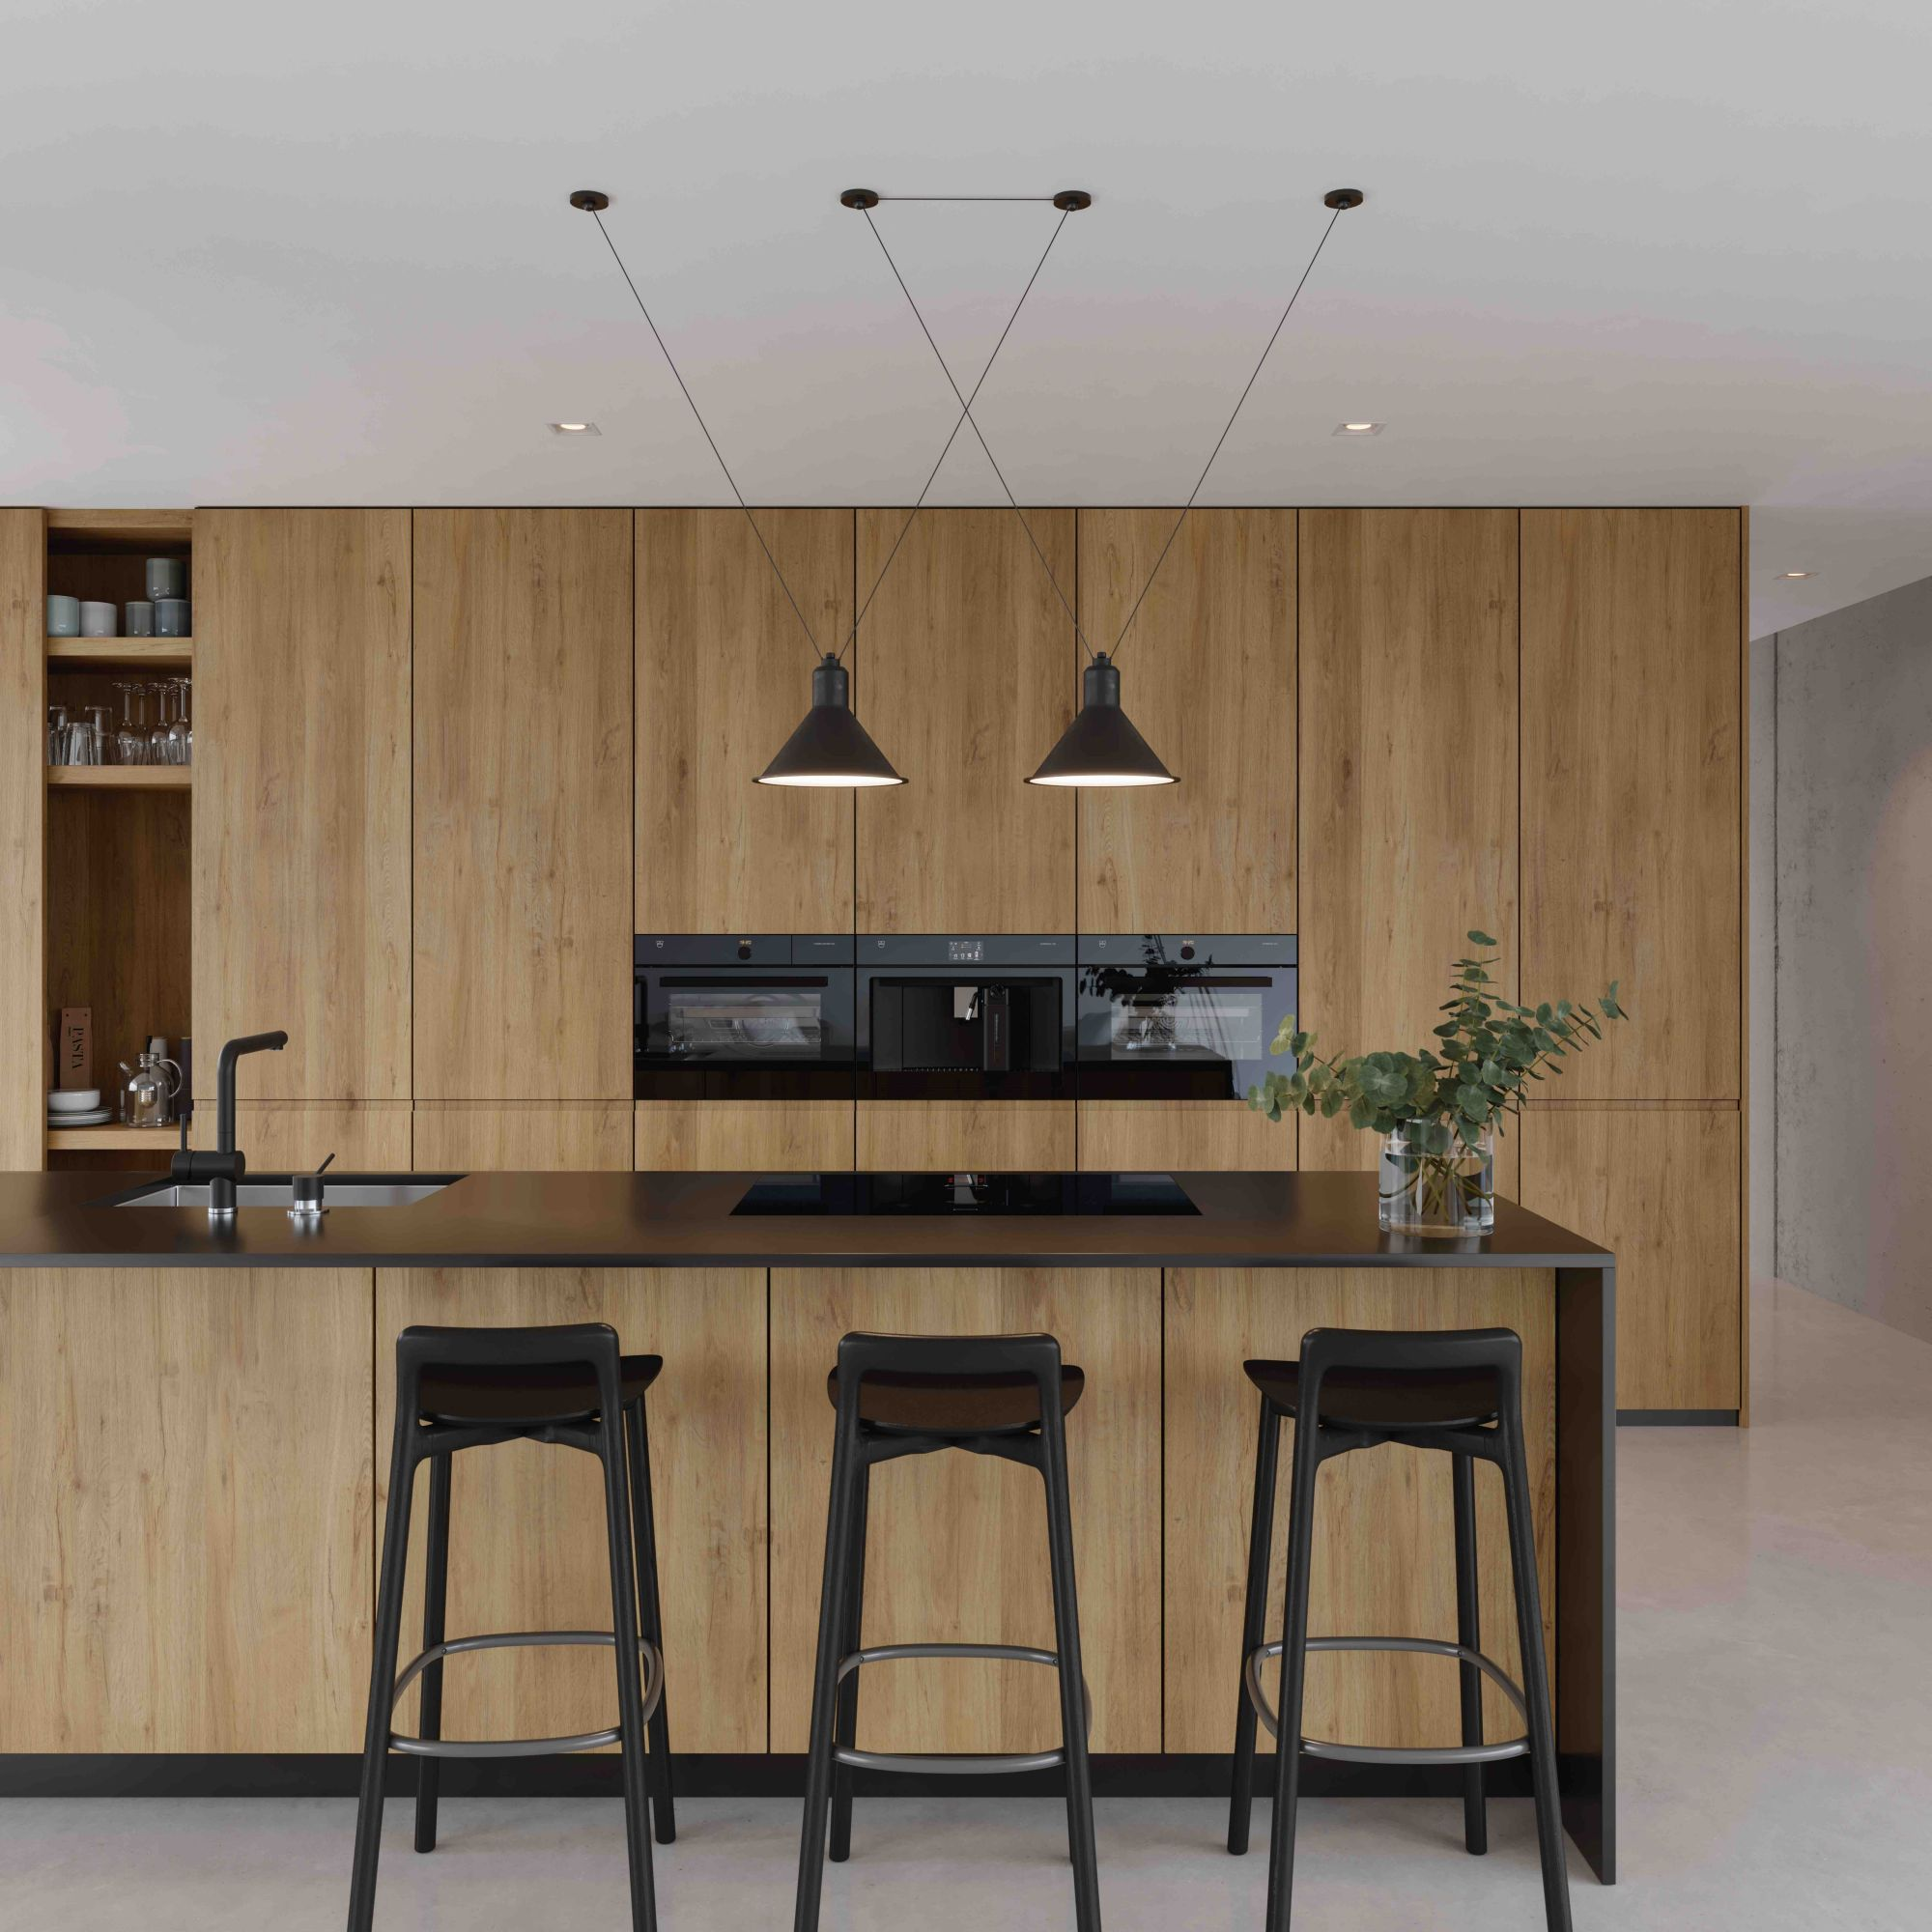 V-Zug ovens and induction cooktop pictured with light wood cabinetry